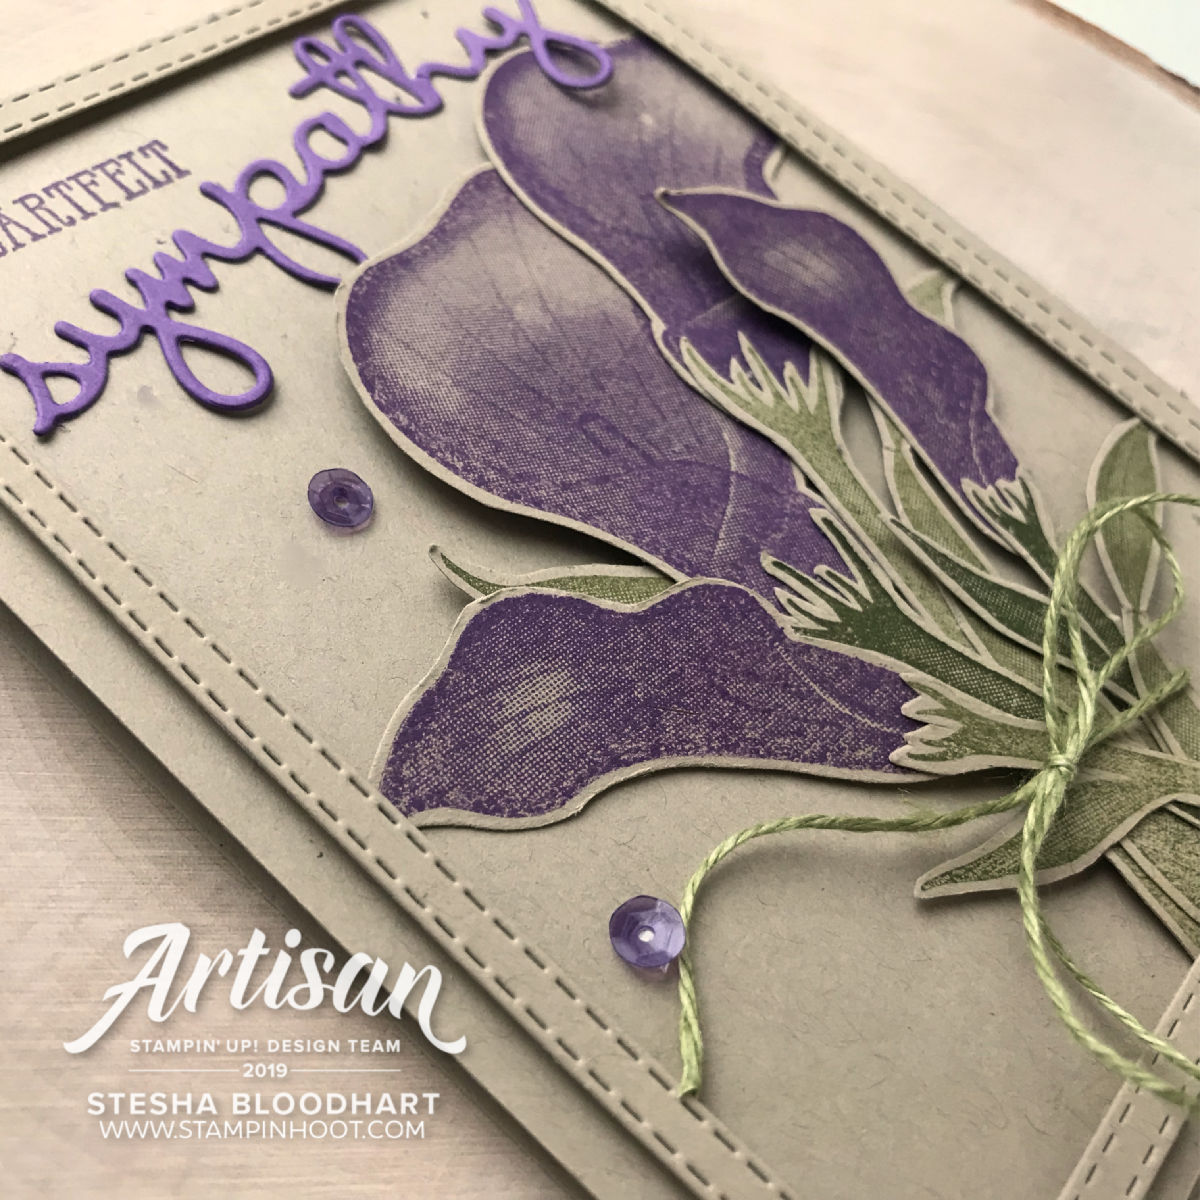 Lasting Lily Sale-A-Bration Stamp Set by Stampin' Up! Free with $100 Purchase Sympathy Card Created by Stesha Bloodhart, Stampin' Hoot! 2019 Artisan Design Team